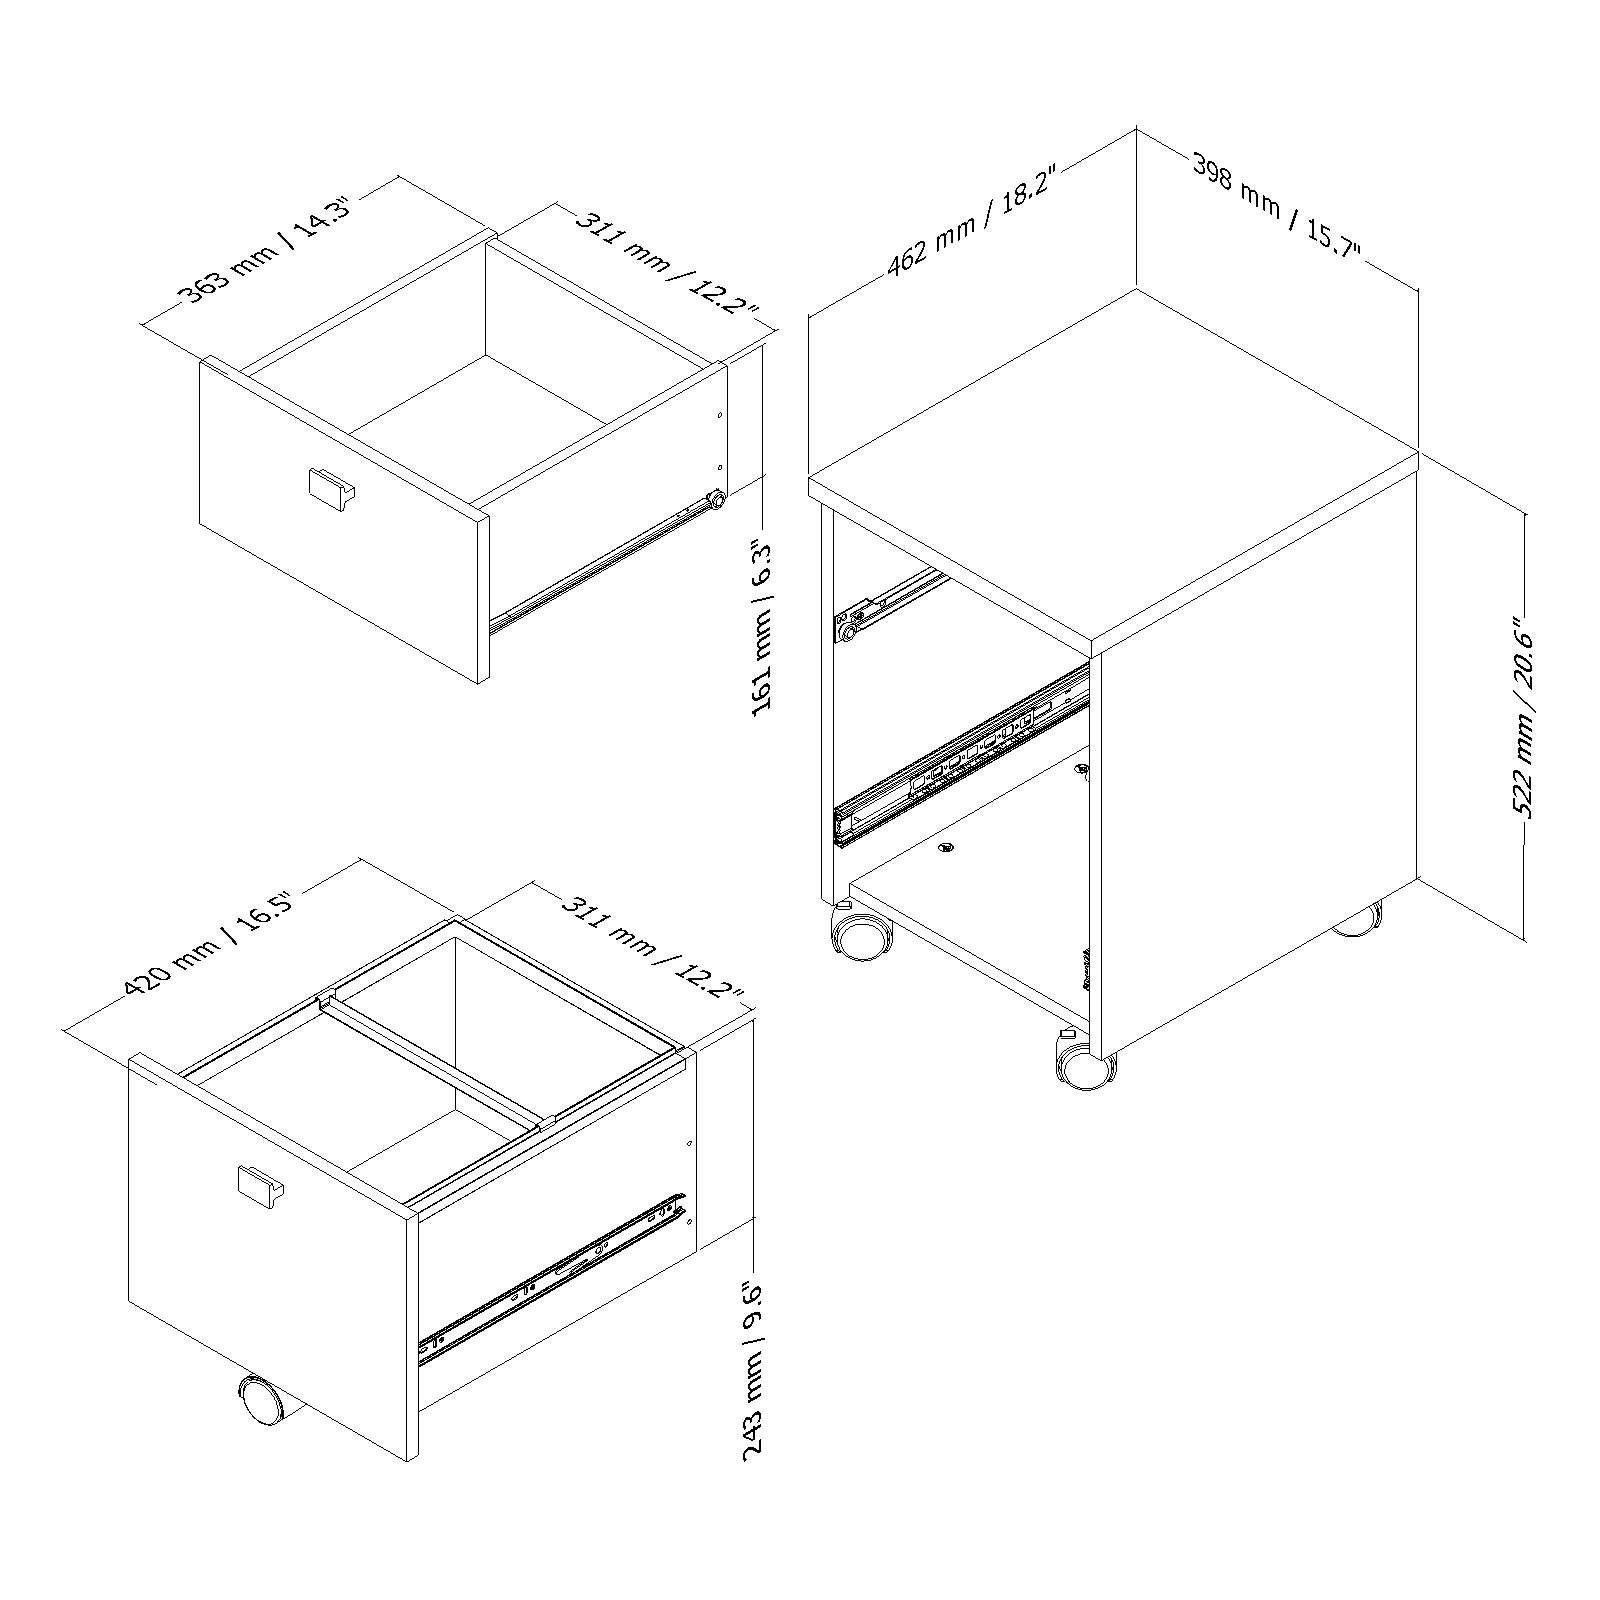 South shore 2 drawers vertical wood posite filing cabi multiple finishes available walmart